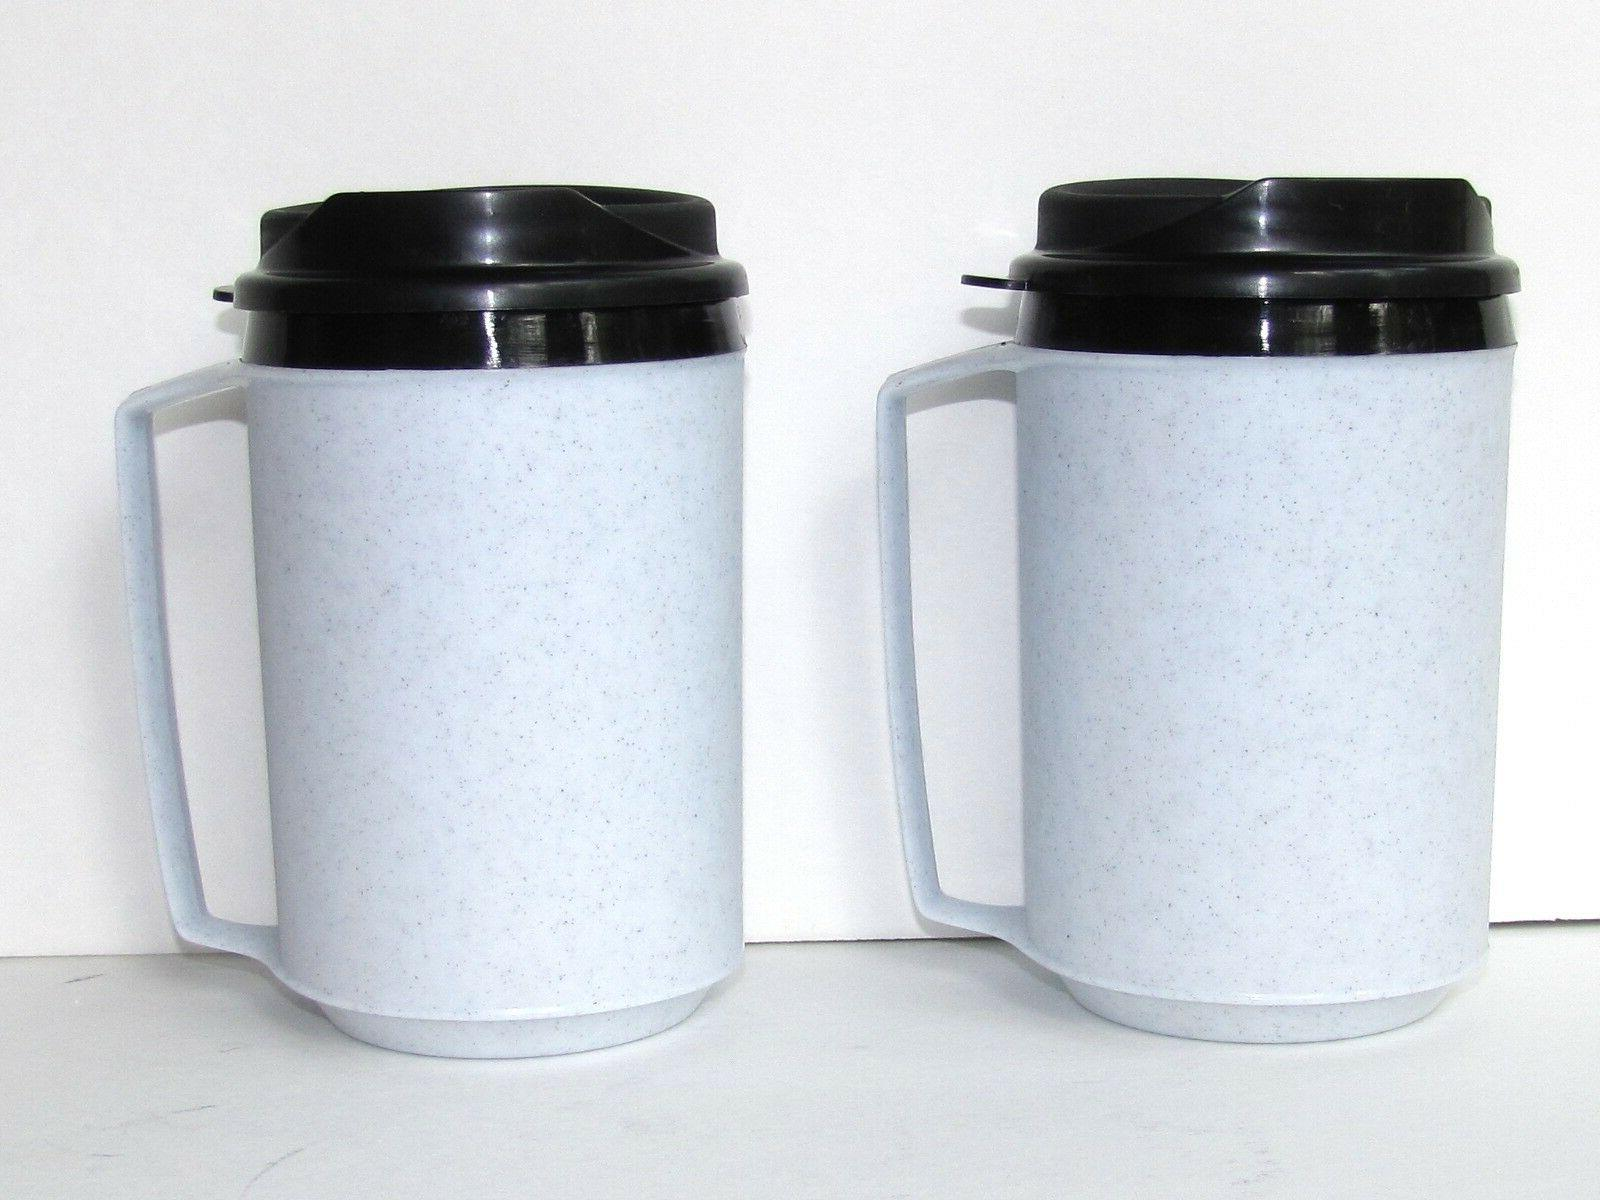 NEW 2 Insulated Coffee Mugs Classic Aladdin Molds by ThermoS